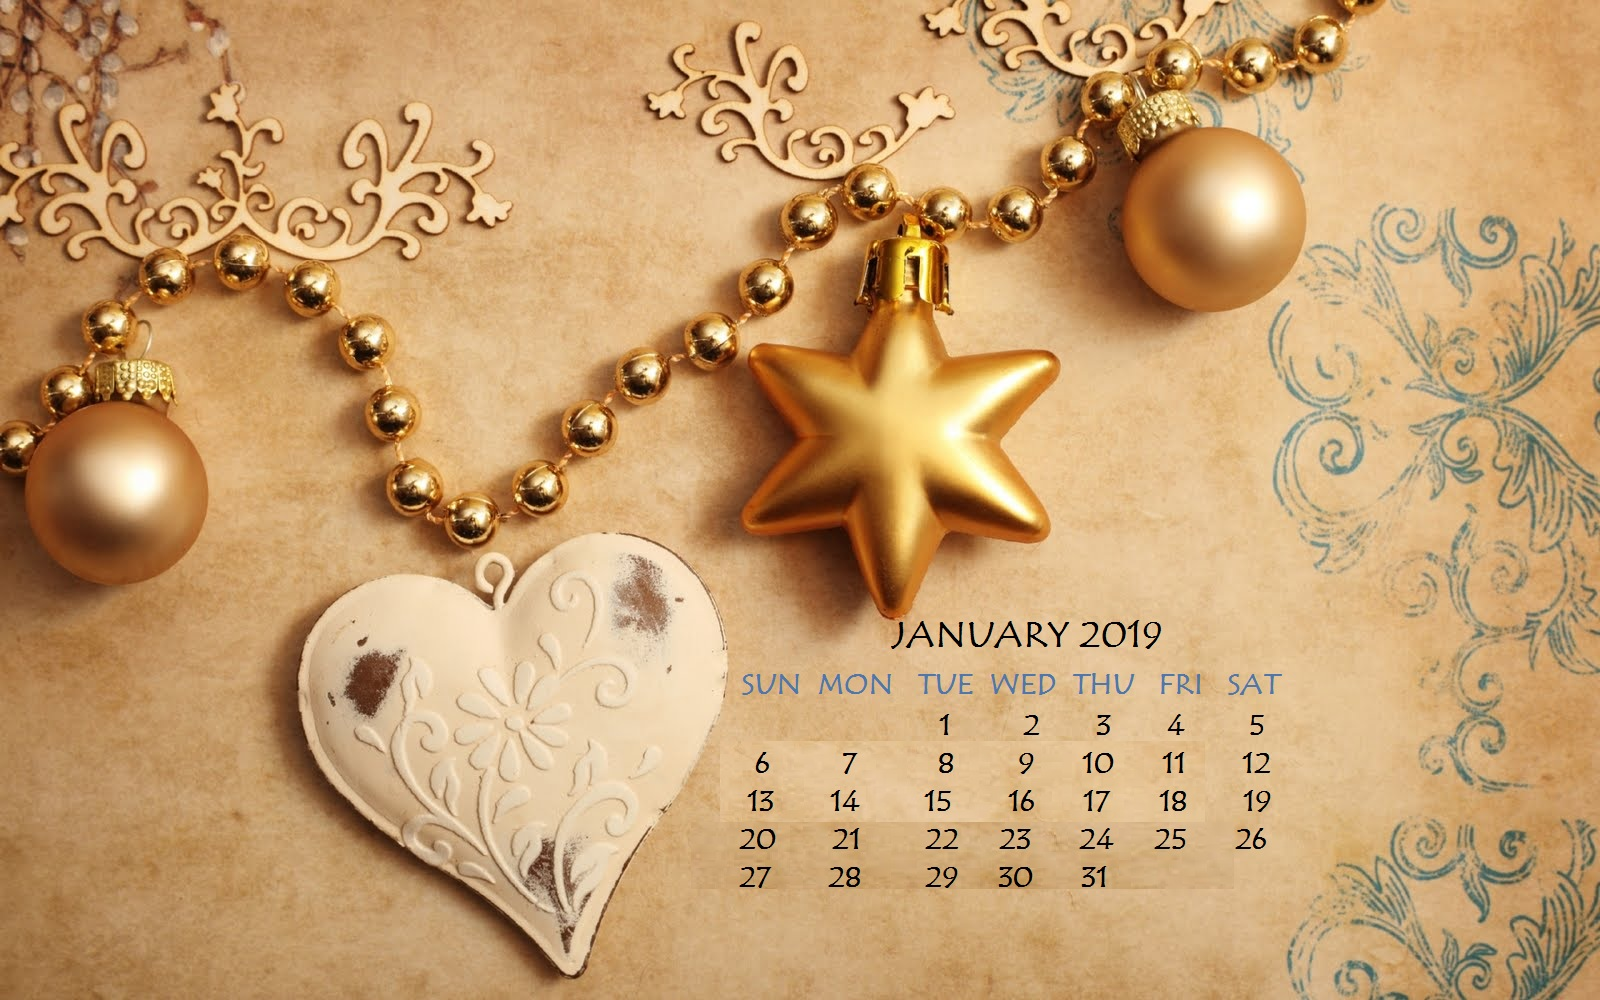 January 2019 Pearl Stone Calendar Wallpaper